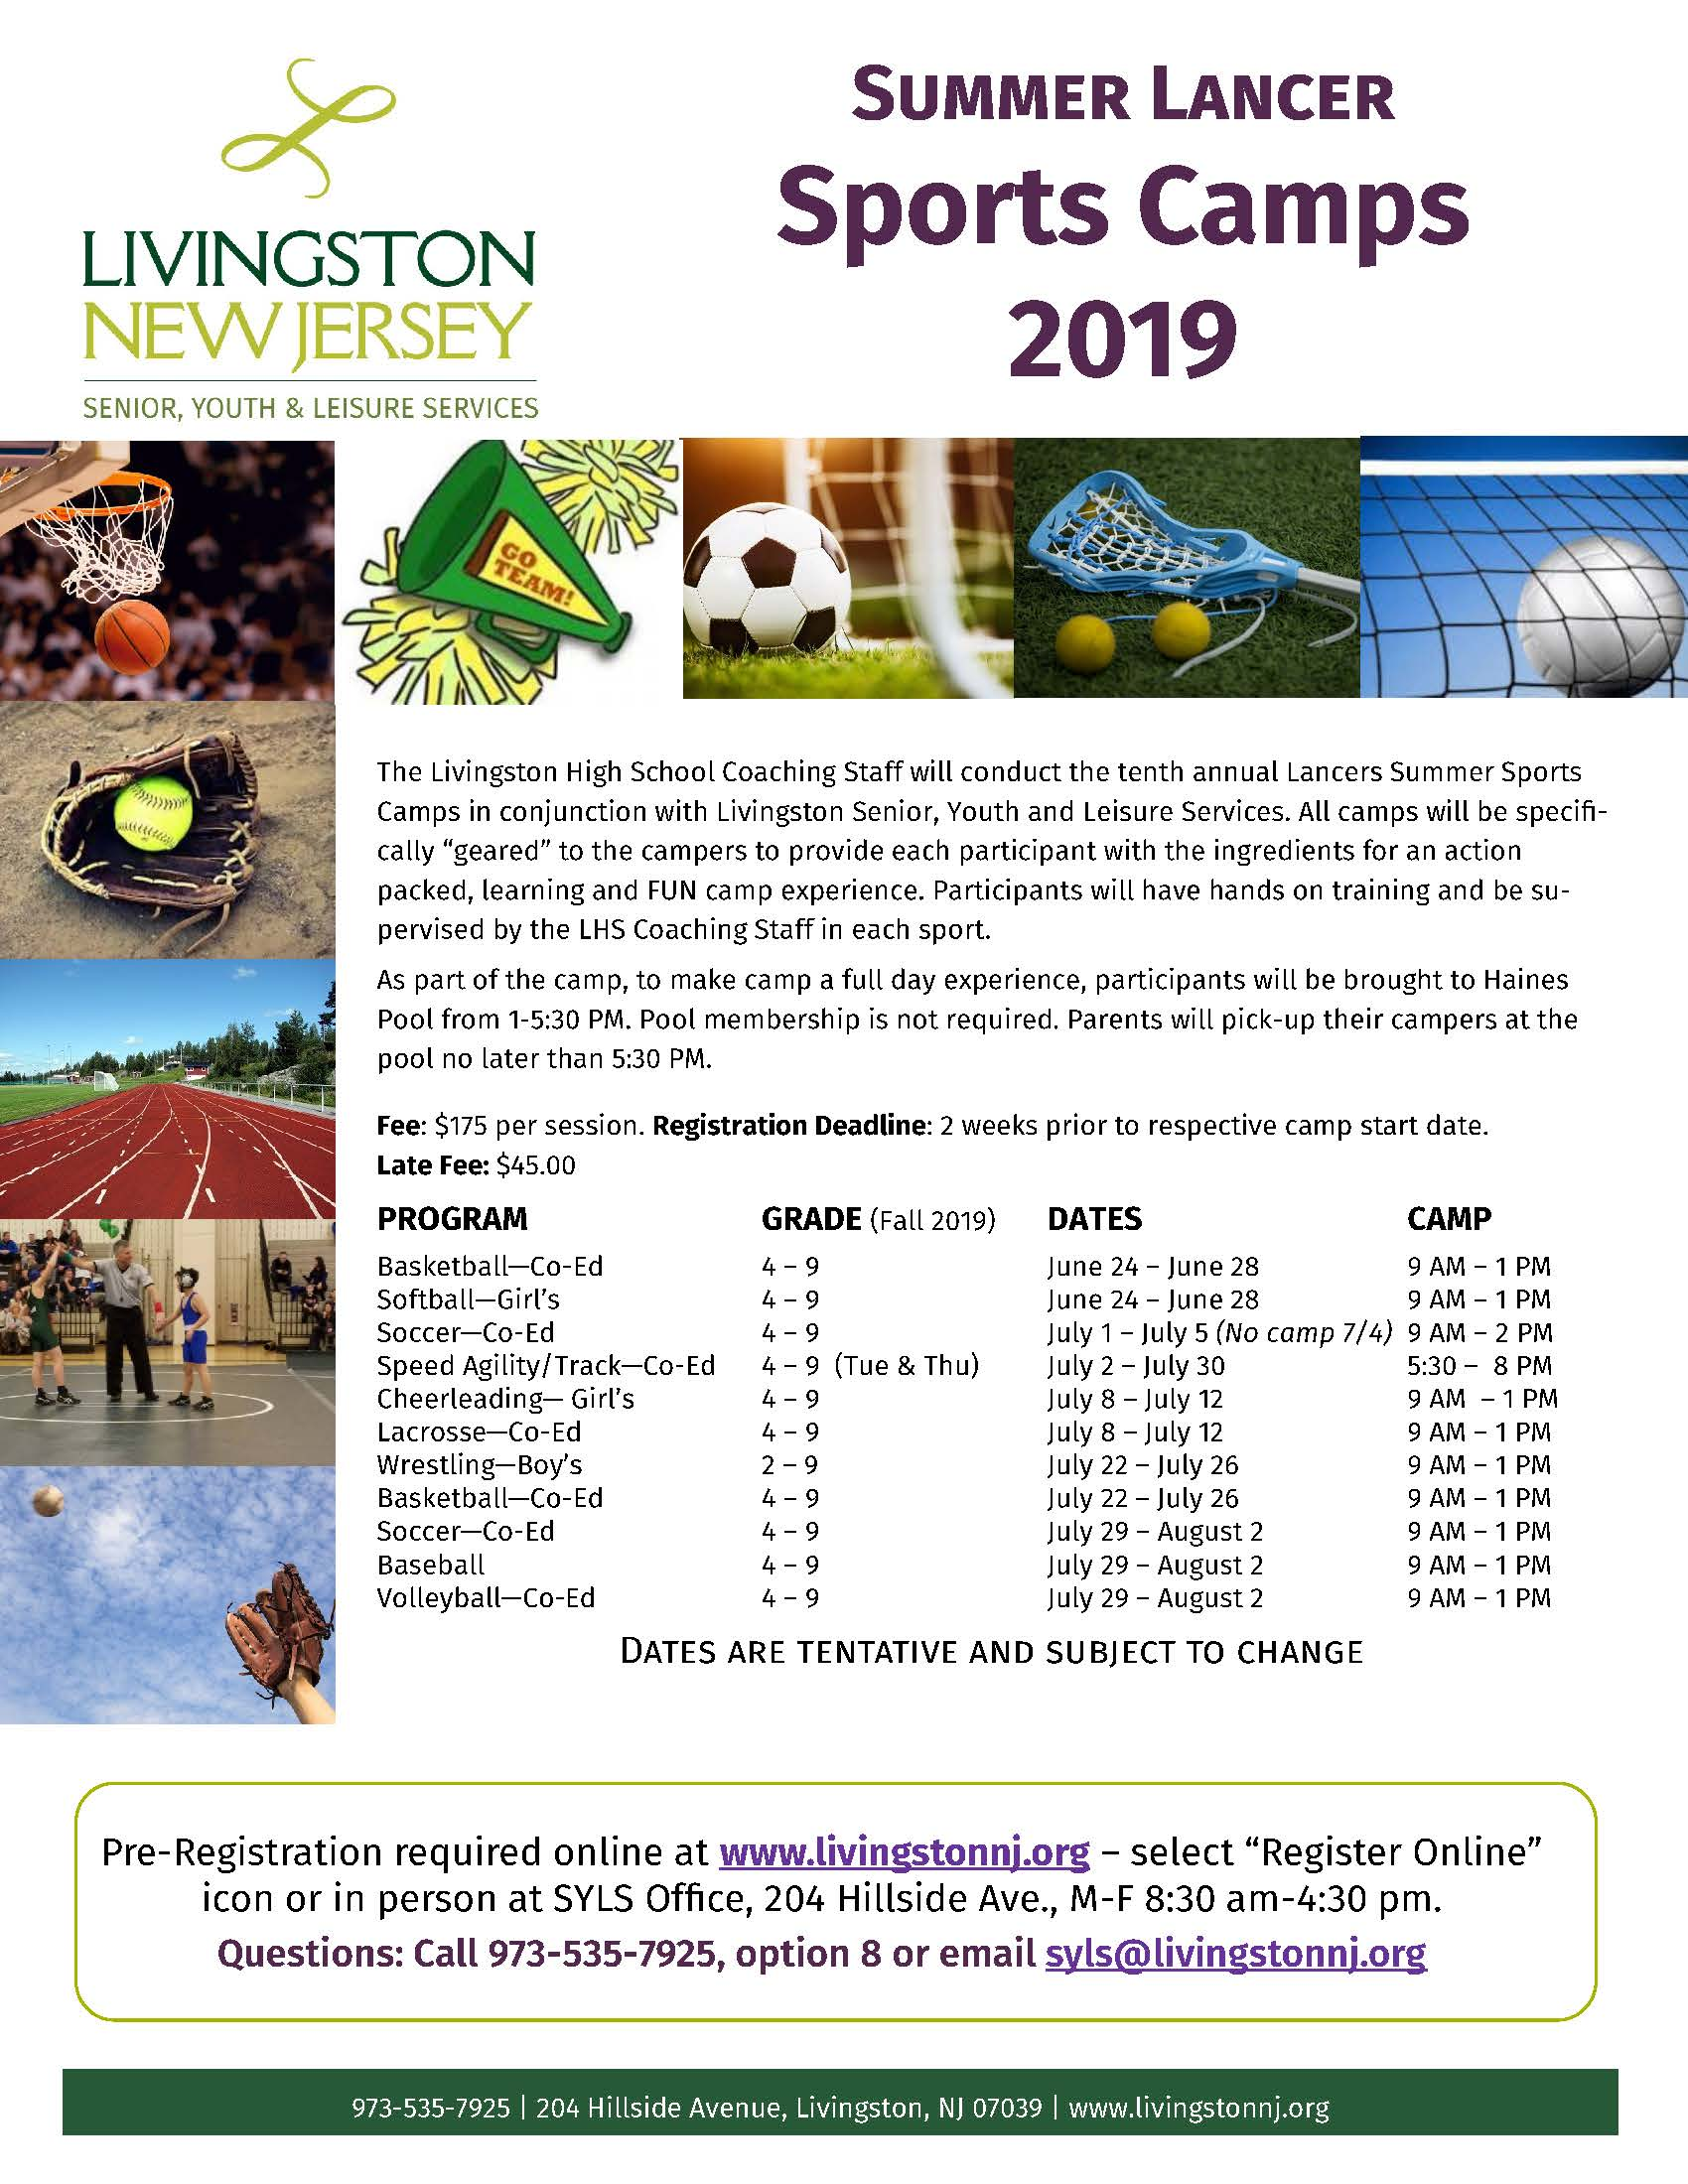 Summer Lancer Sports Camp 2019